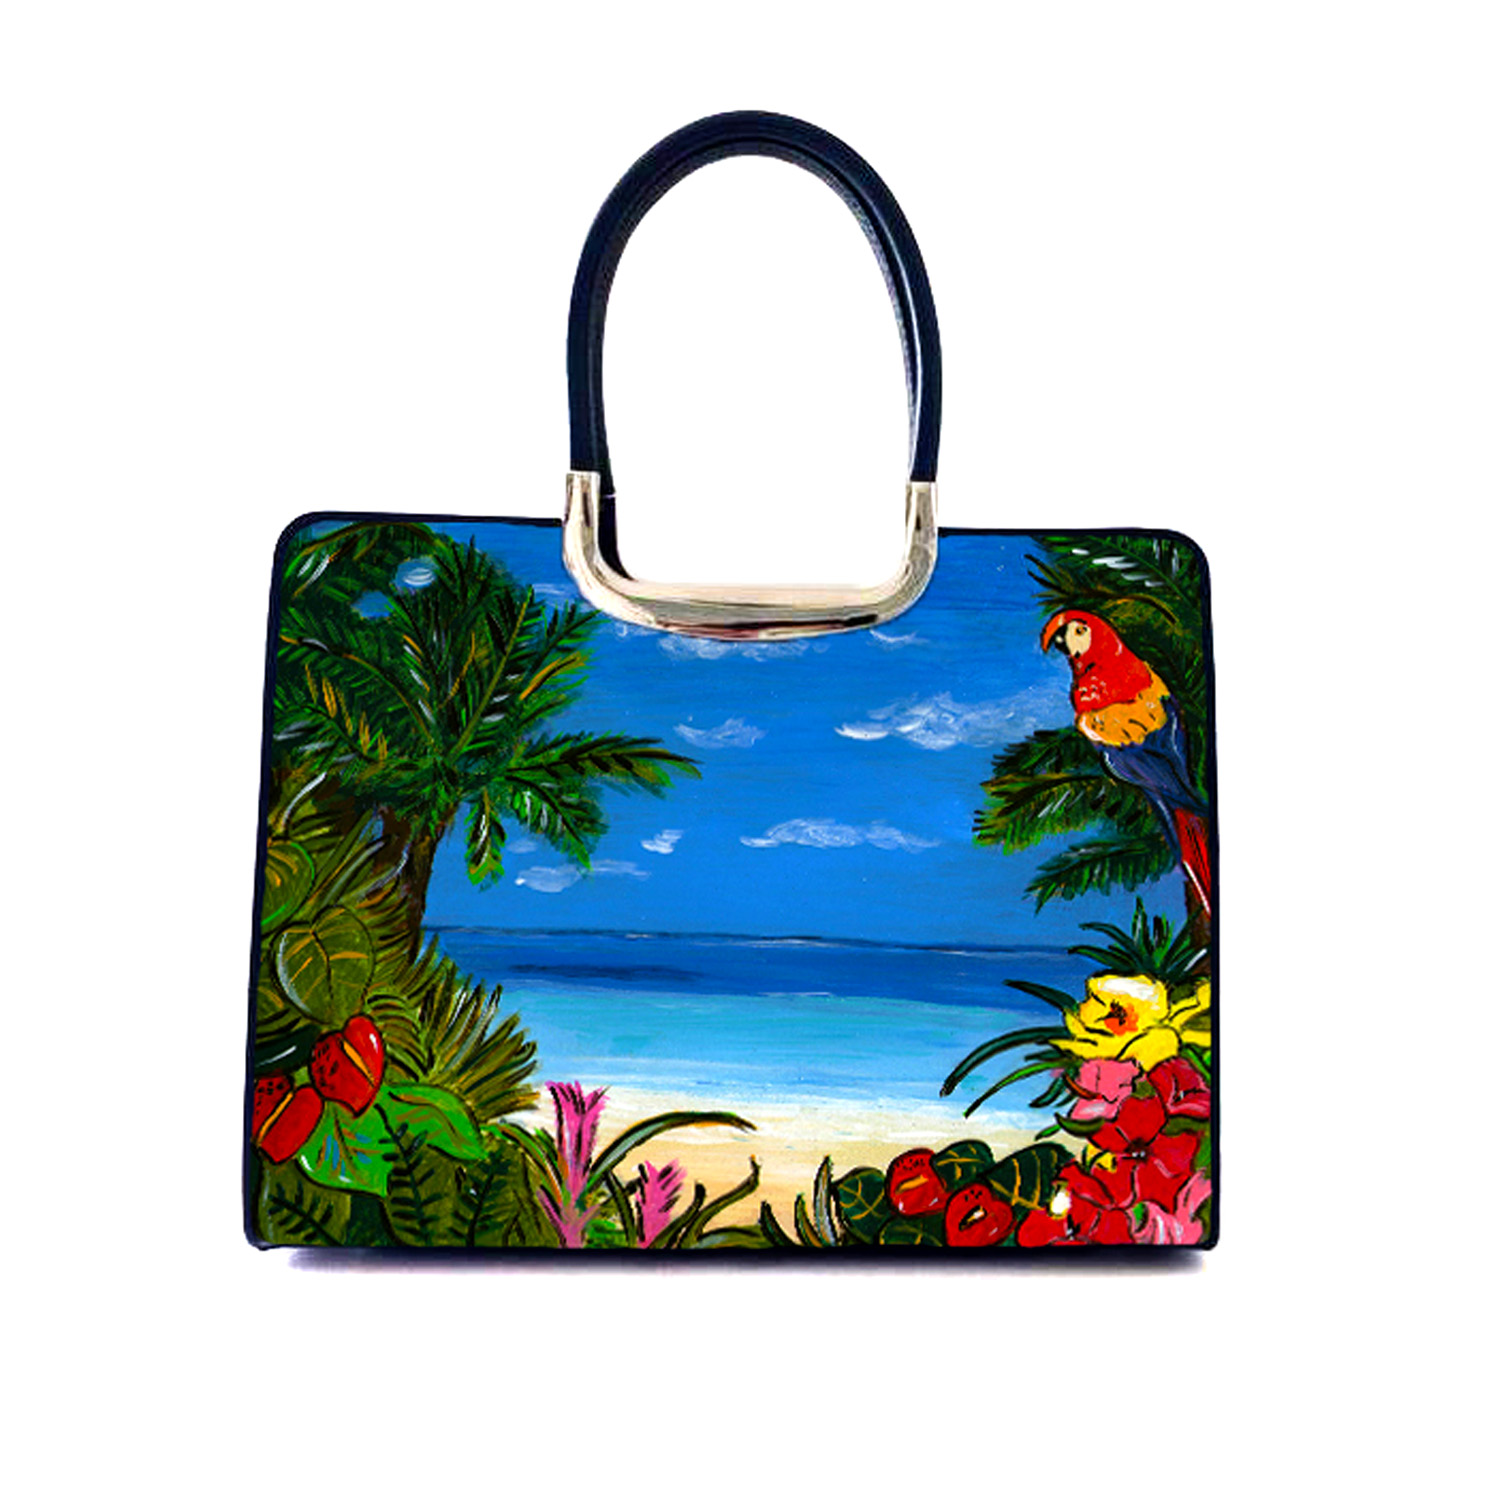 Hand painted bag - Tropicana